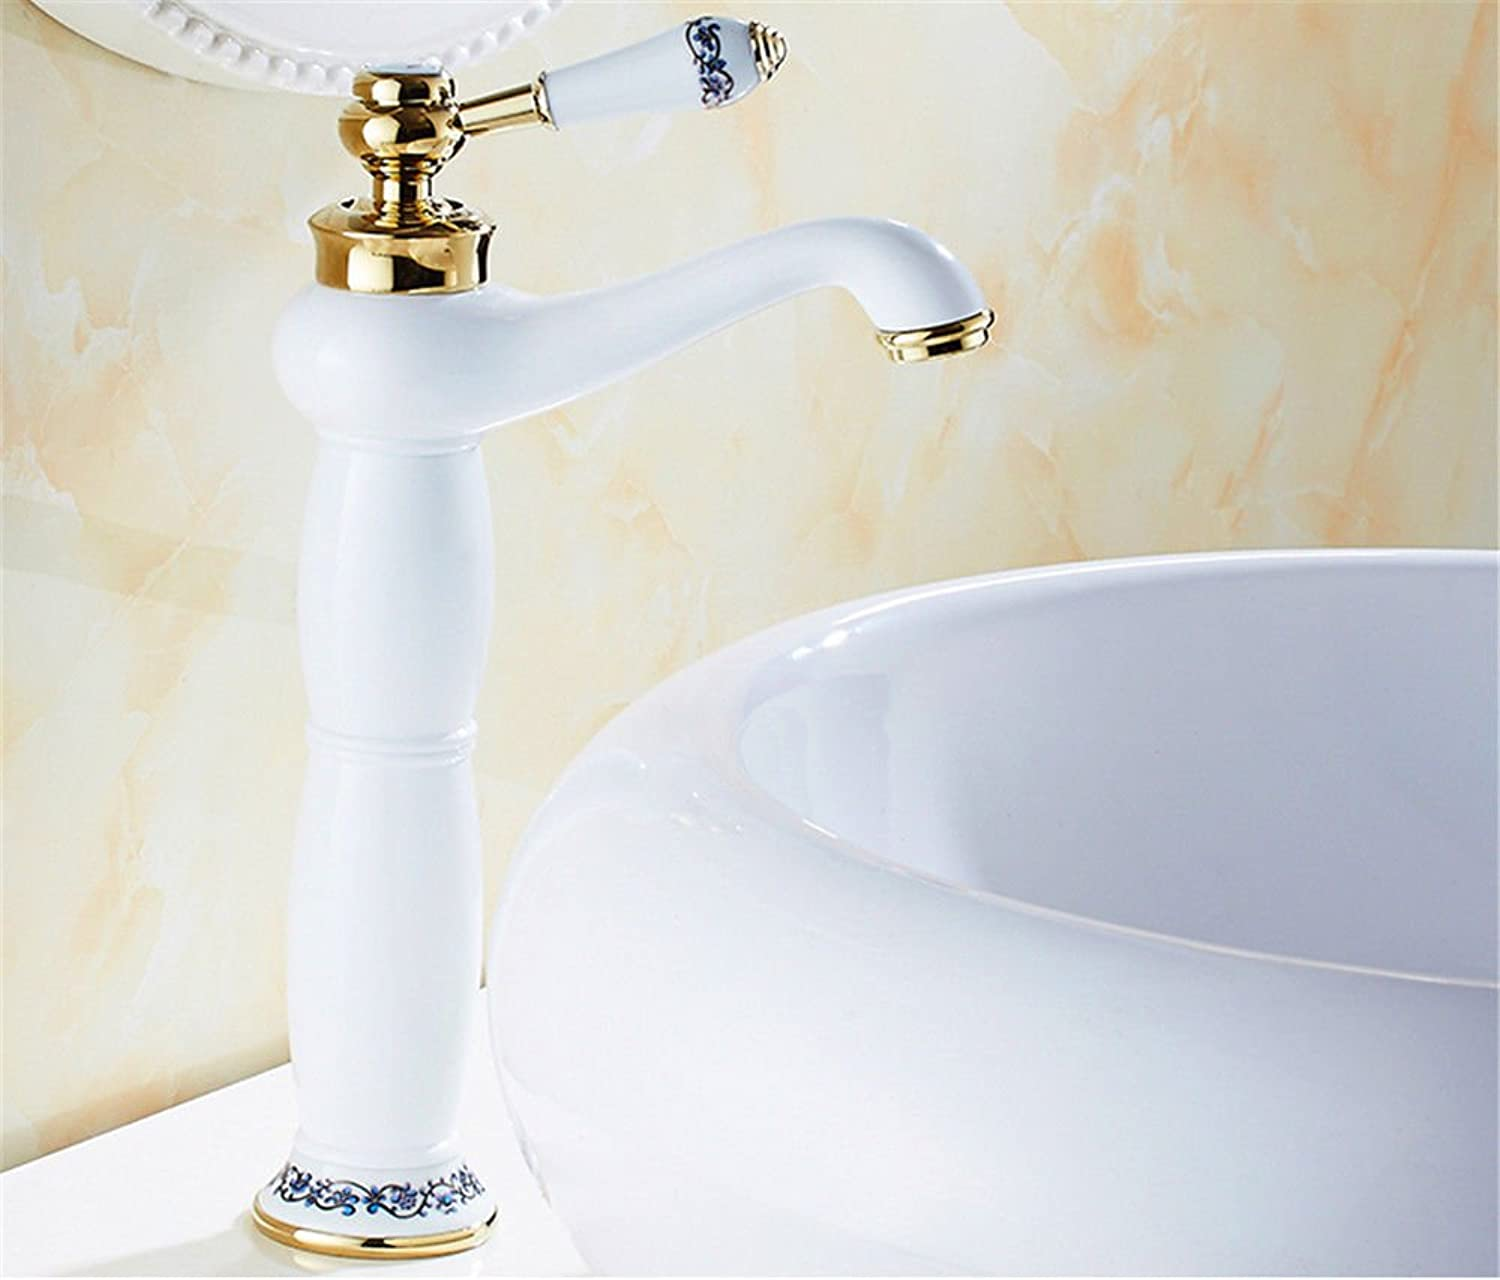 Lalaky Taps Faucet Kitchen Mixer Sink Waterfall Bathroom Mixer Basin Mixer Tap for Kitchen Bathroom and Washroom White Hot and Cold Copper